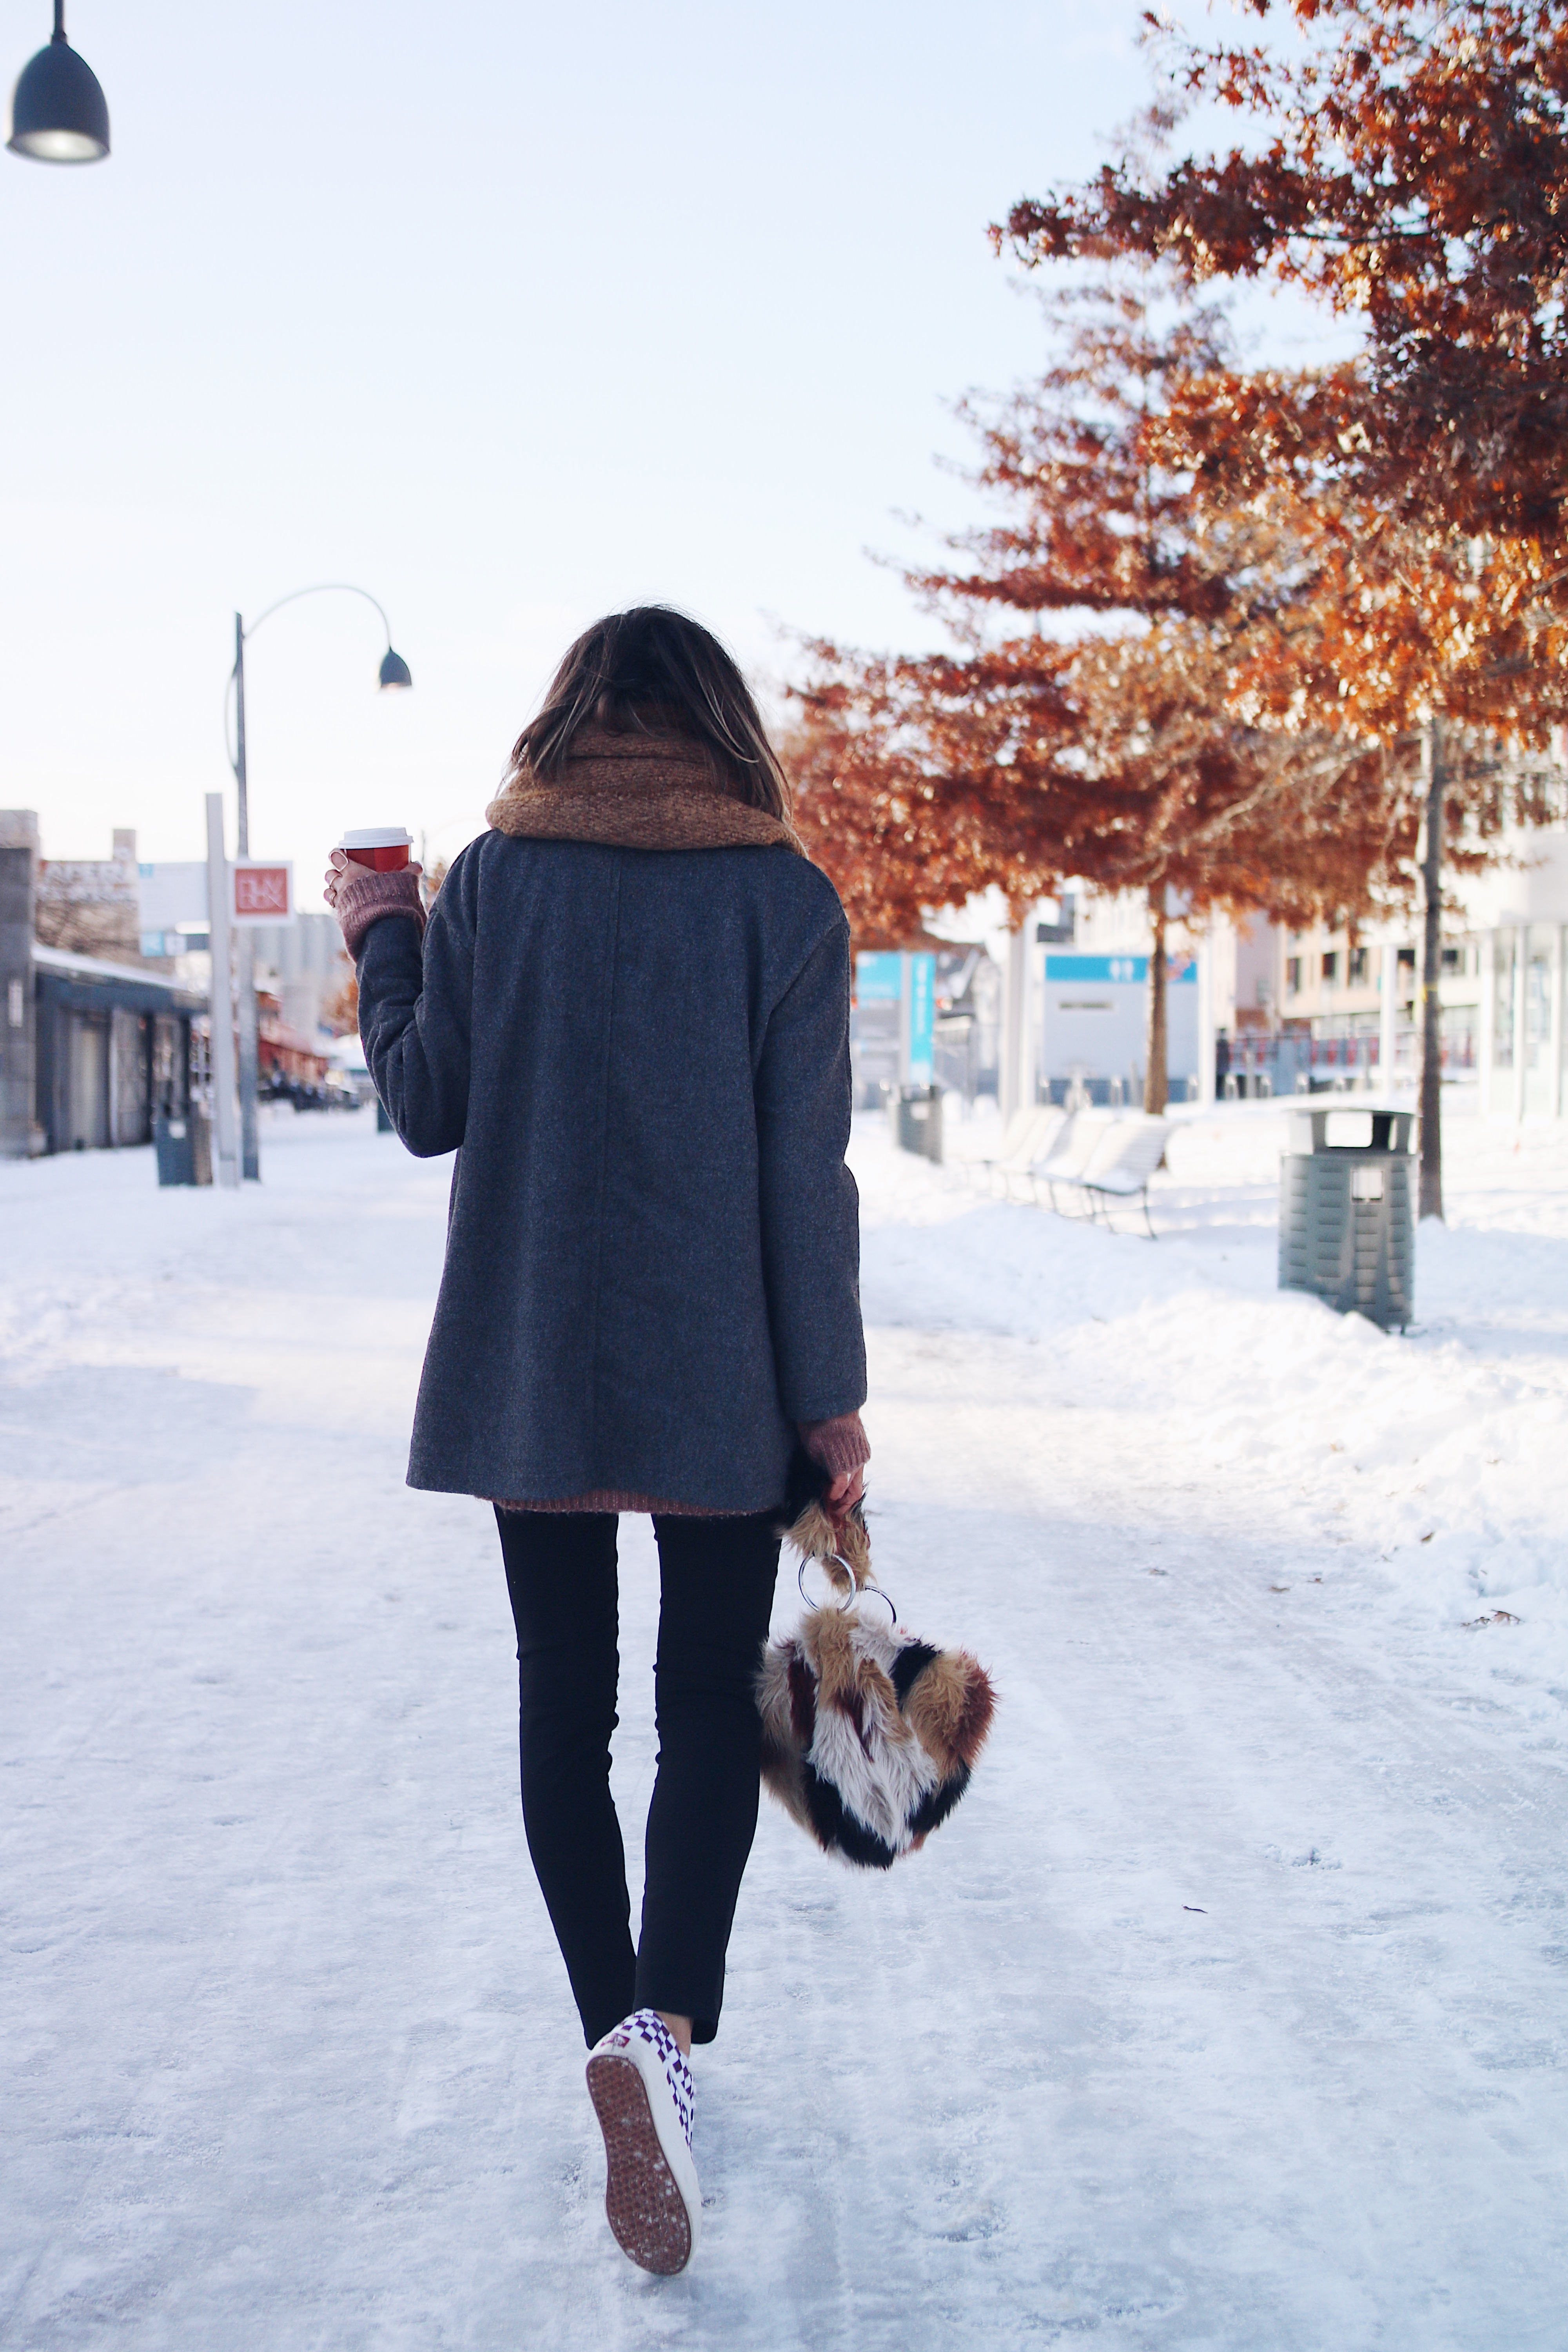 WINTER OUTFIT IN MONTREAL